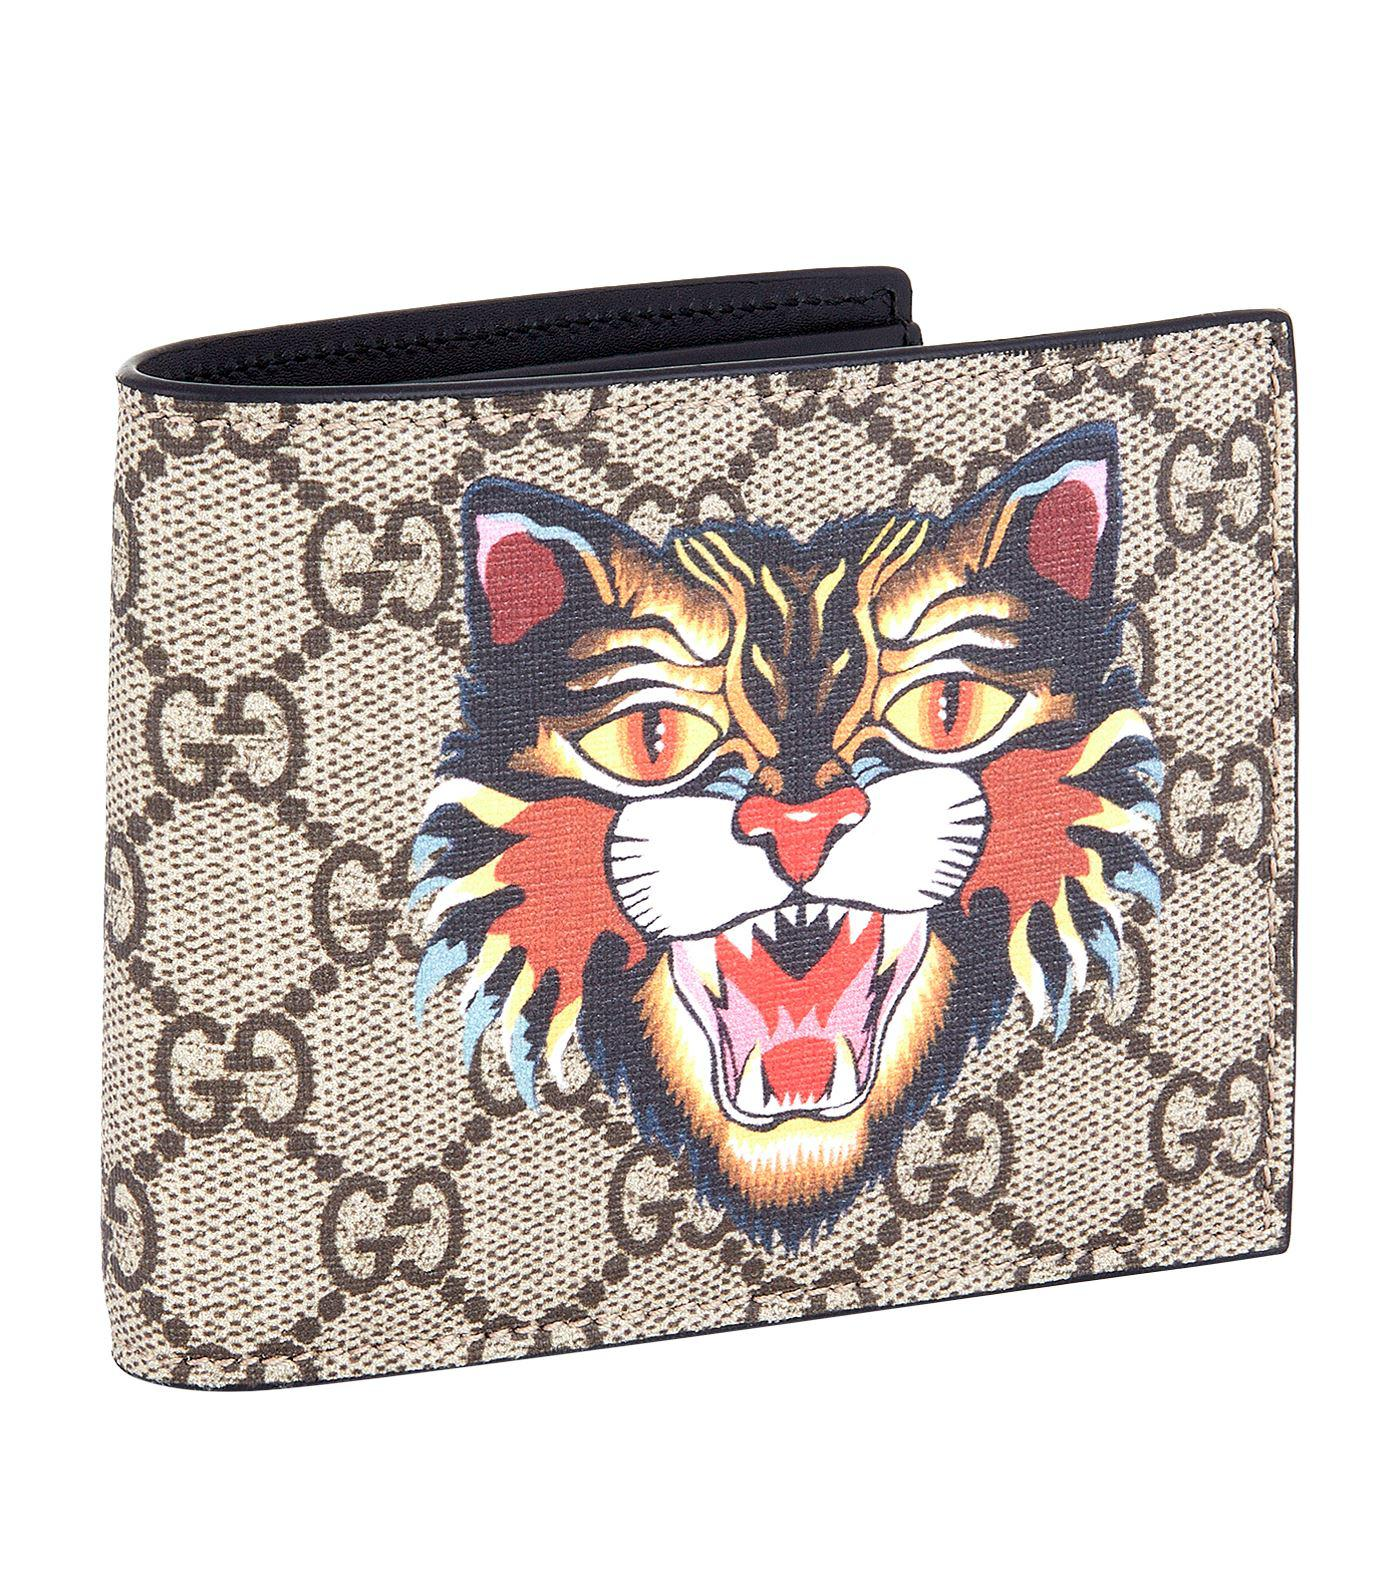 Lyst - Gucci Angry Cat Bifold Wallet in Natural ee3ad4adf3ef